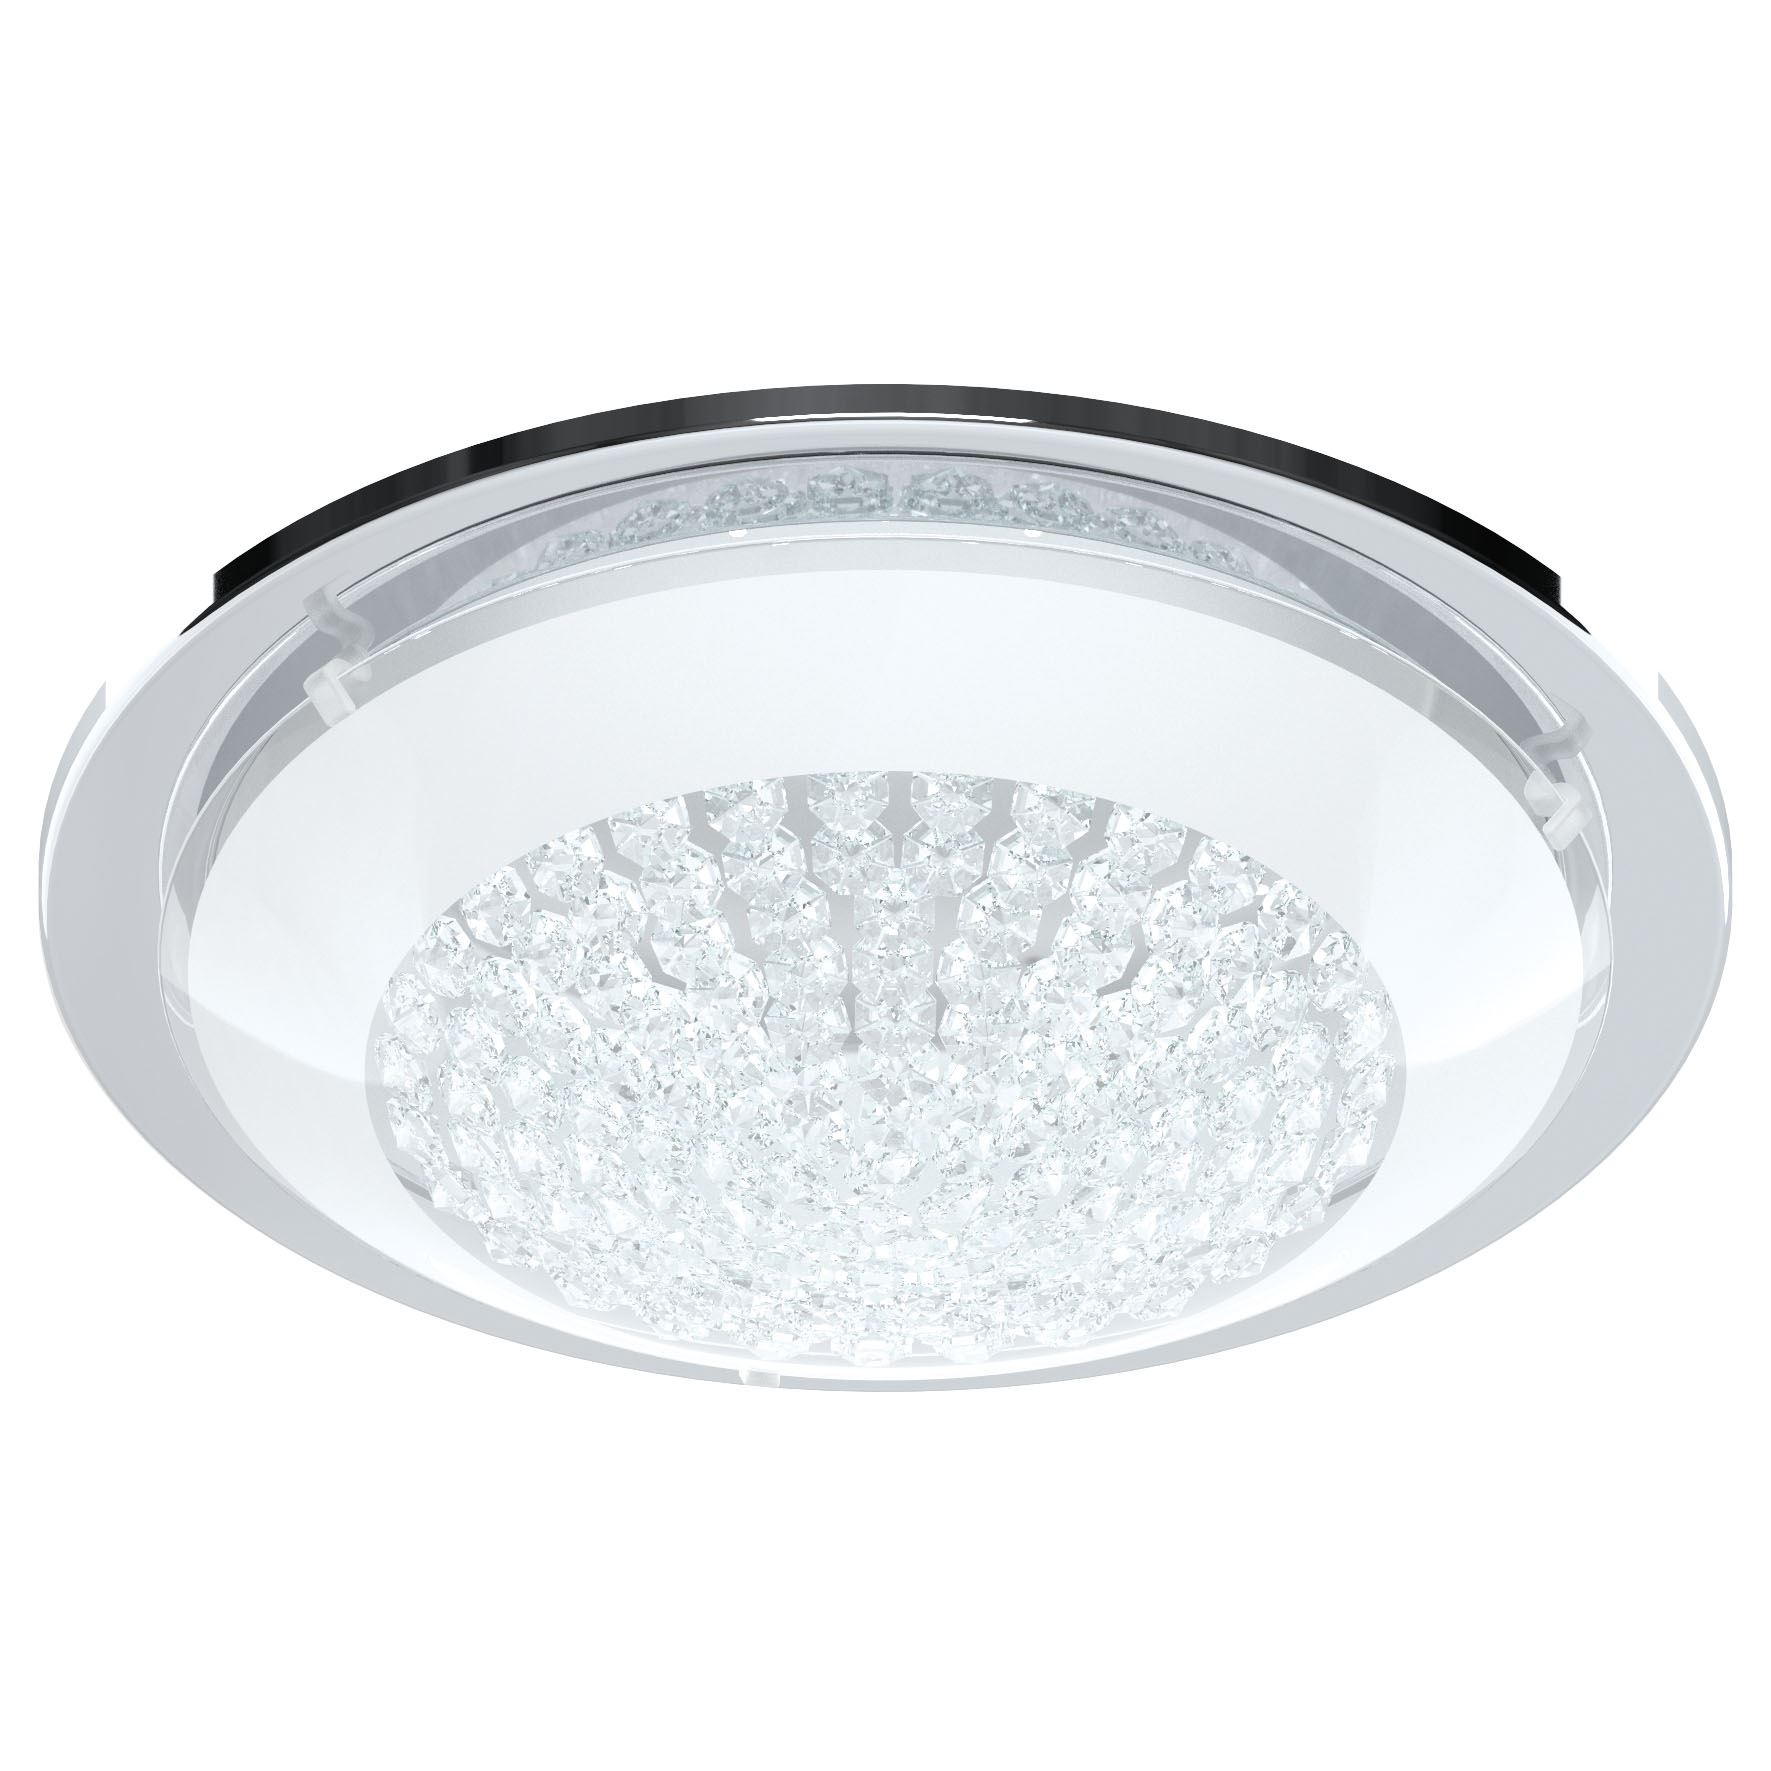 Acolla LED Ceiling Light Glass Crystals Chrome White Clear Dia 290 mm